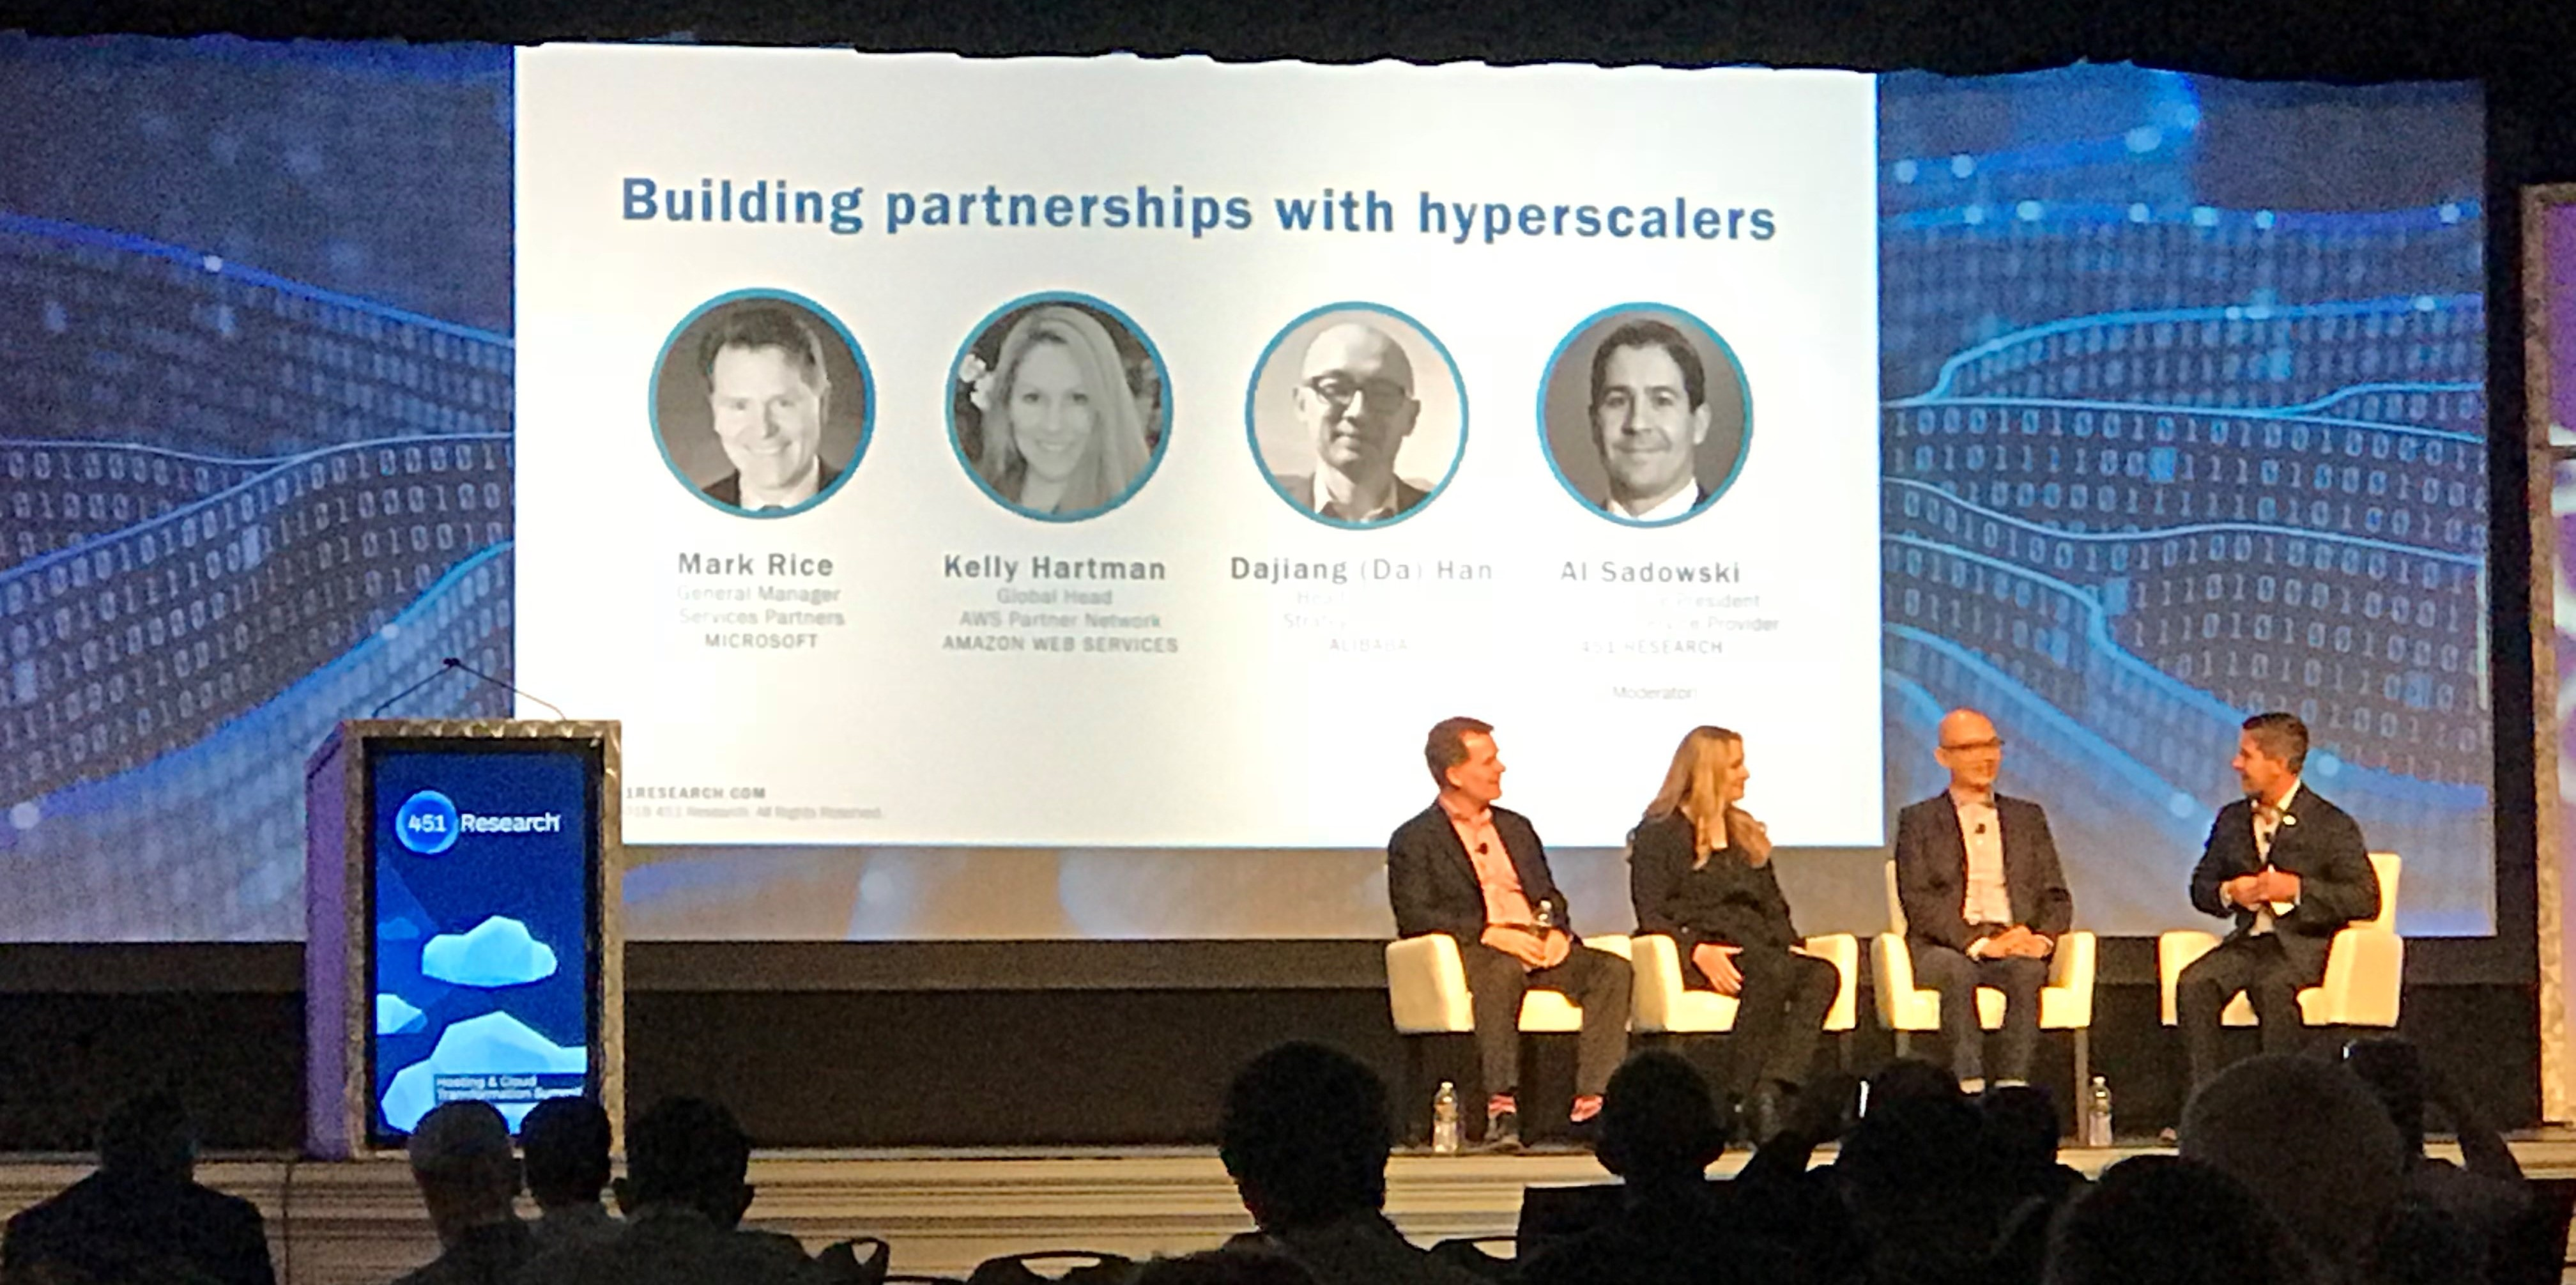 Figure 1 (from left to right) Mark Rice, General Manager of Services Partners at Microsoft; Kelly Hartman, Global Head of the AWS Partner Network at AWS; Daijiang (DA) Han, Head of Global Strategic Alliances at Alibaba Cloud; and Al Sadowski, Research Vice President at 451 Research presenting at HCTS 2018